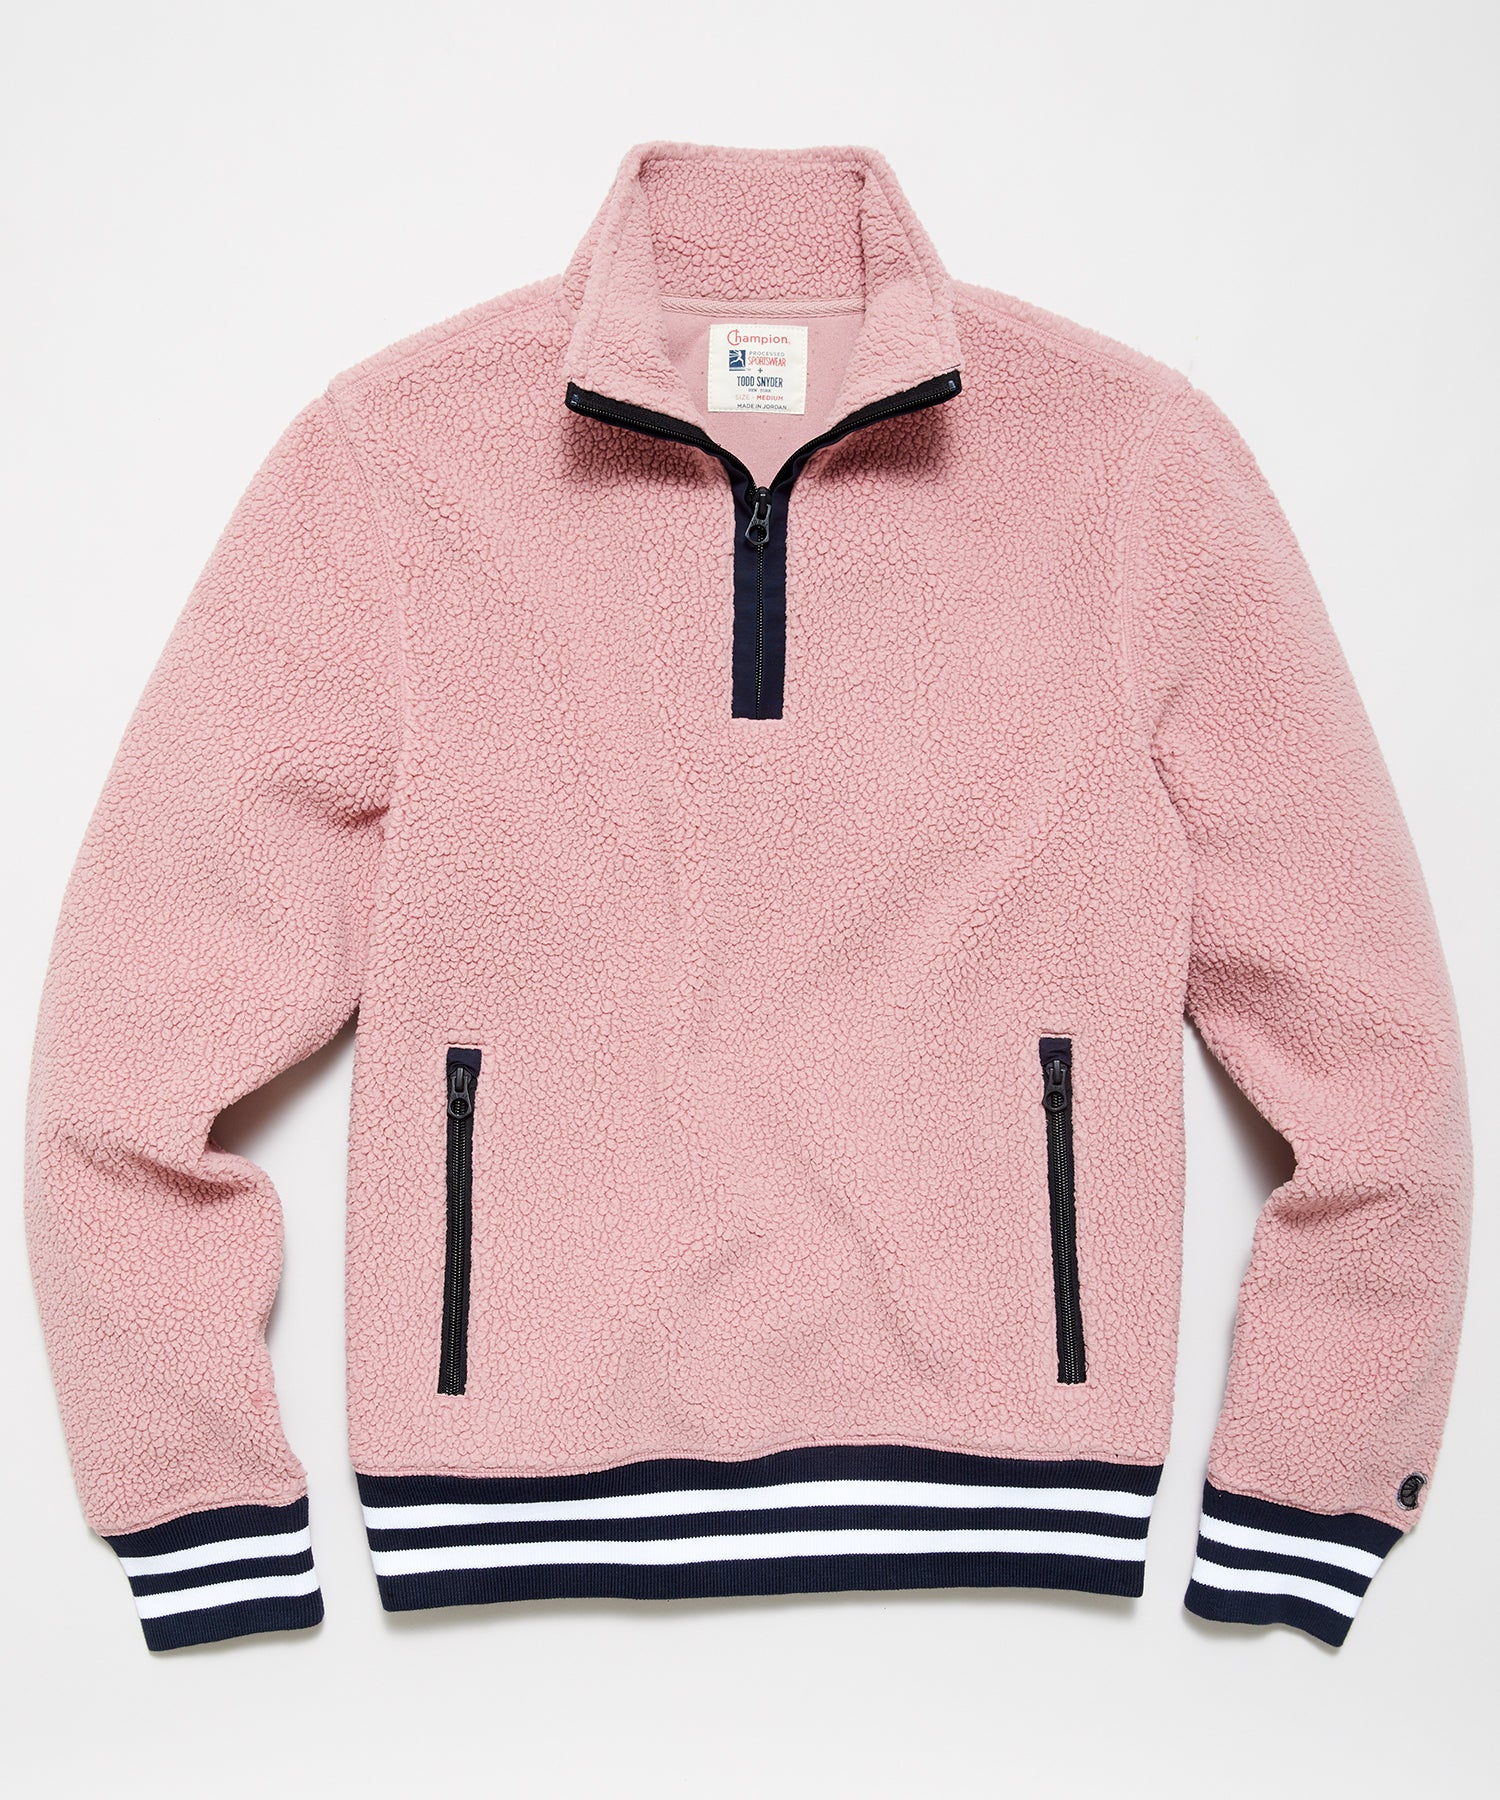 Lightweight Polartec Half Zip in Pinkwater